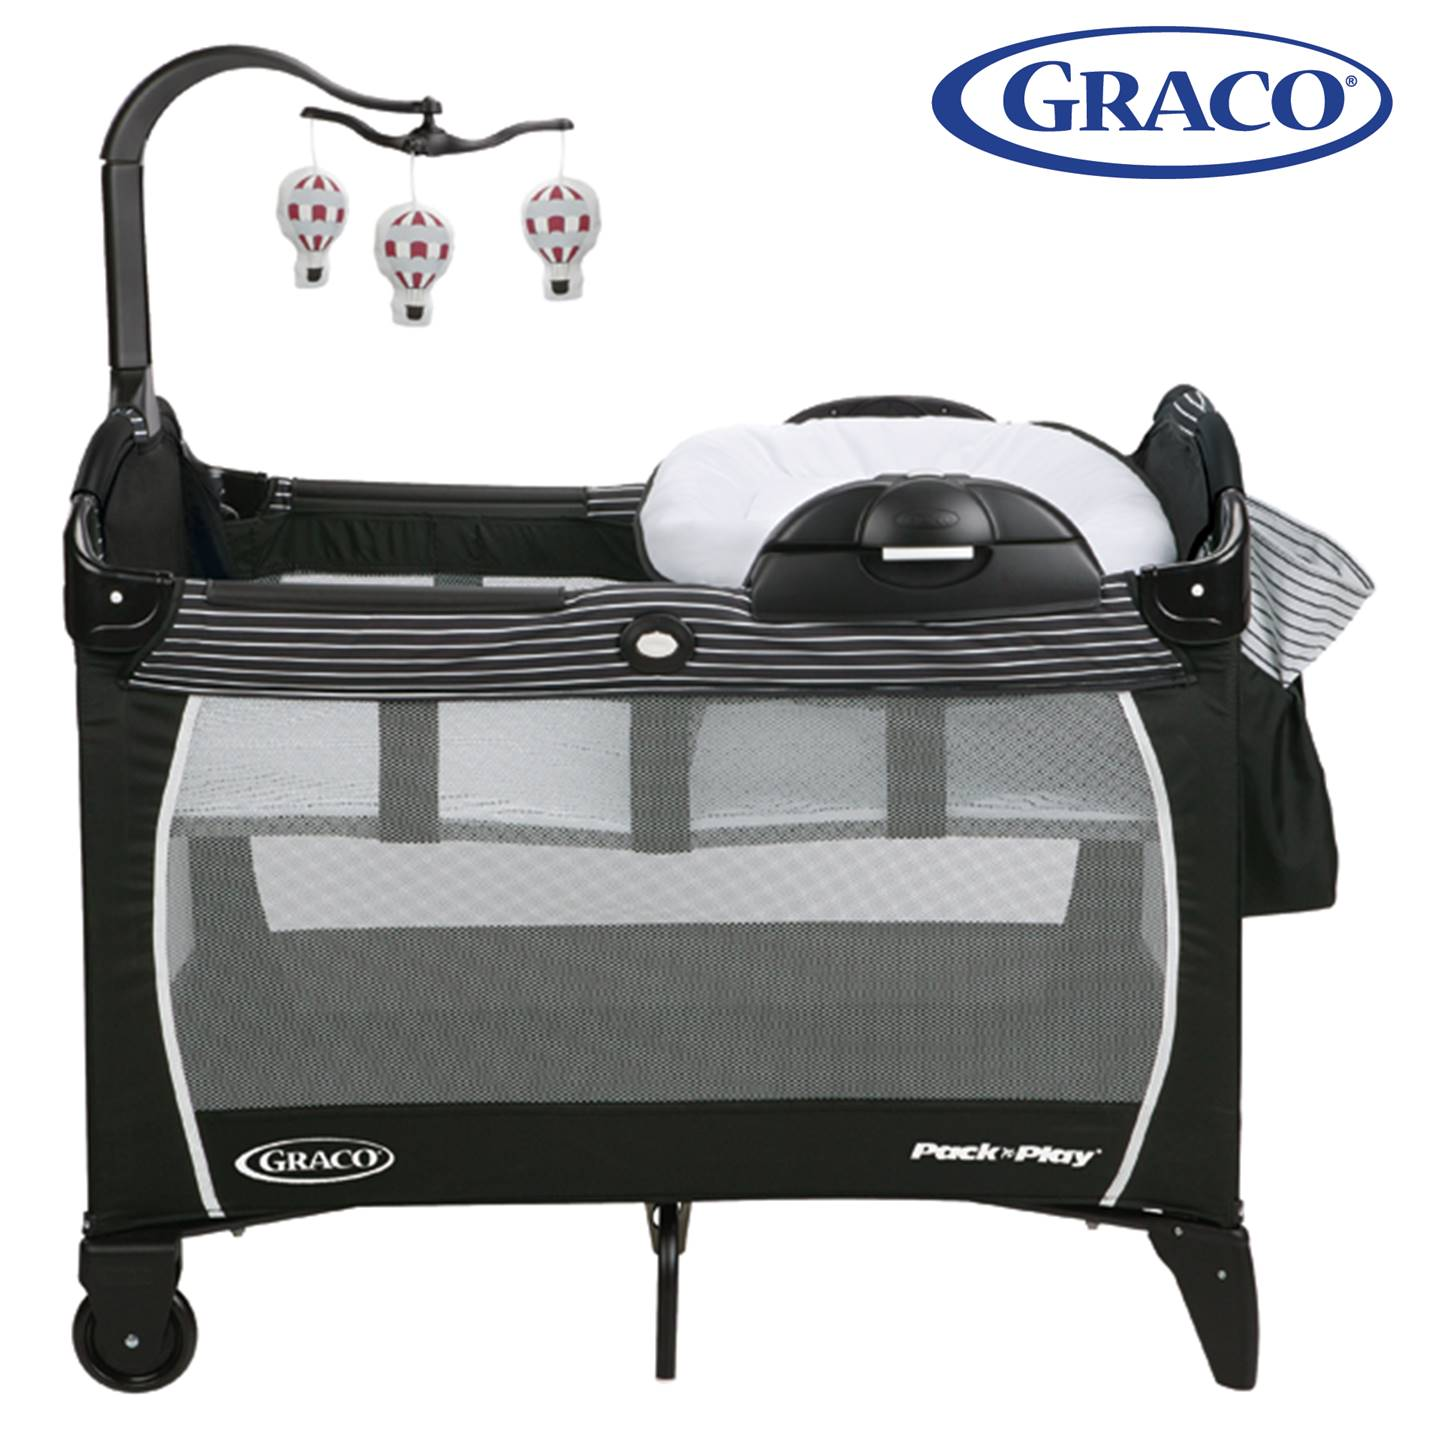 GR4409D50SDI00 Graco Pnp Portable Napper Changer-Studio (4)